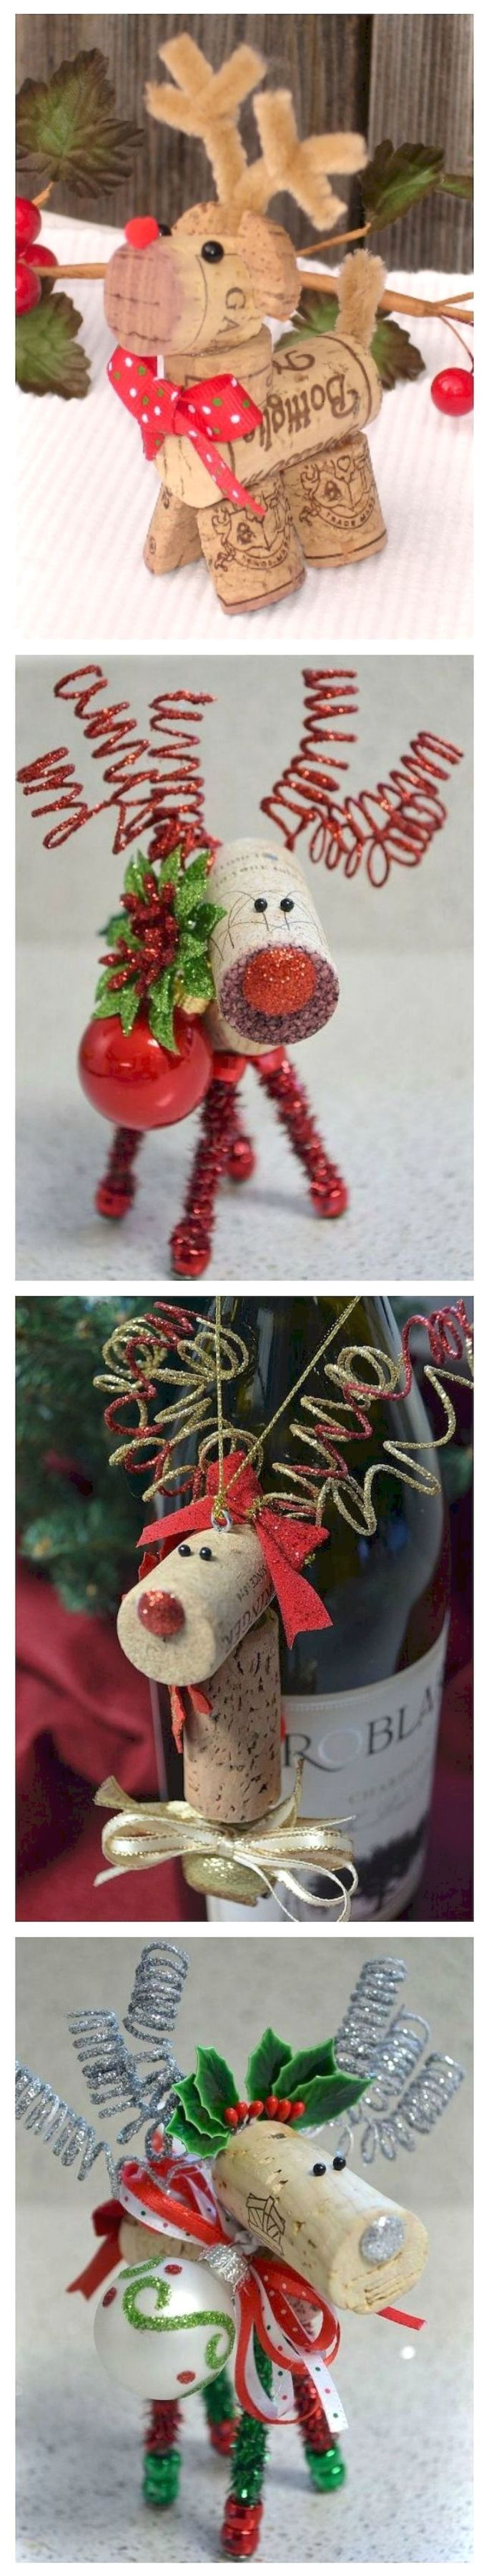 0012 Awesome DIY Christmas Craft Decorations Ideas   Craft Projects ...